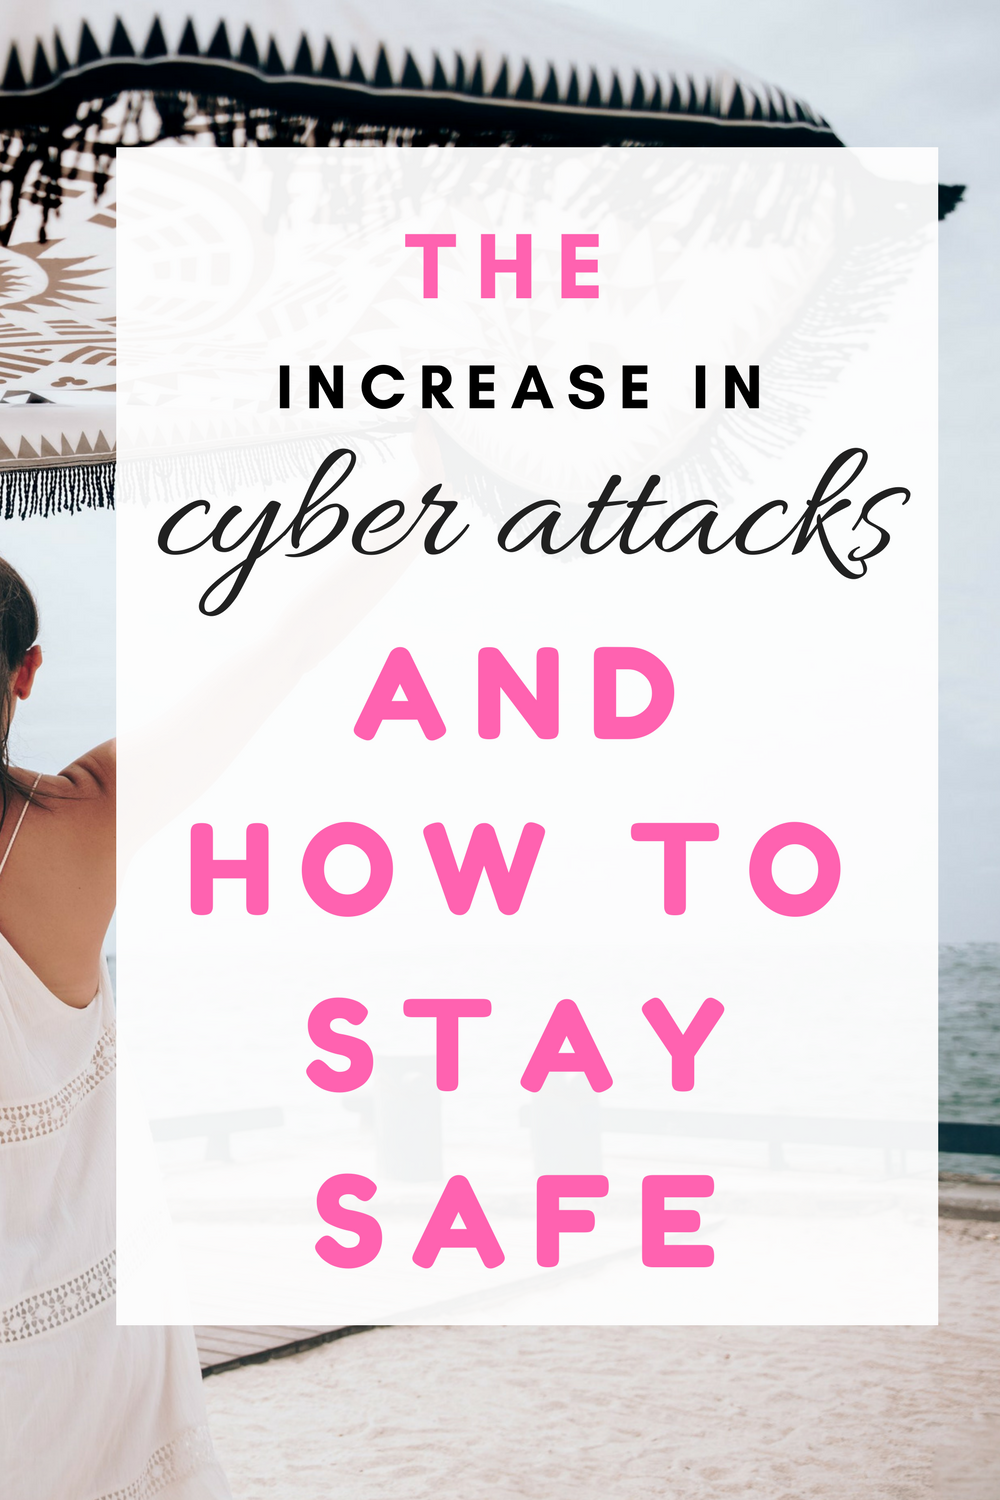 The increase in cyber attacks and how to stay safe